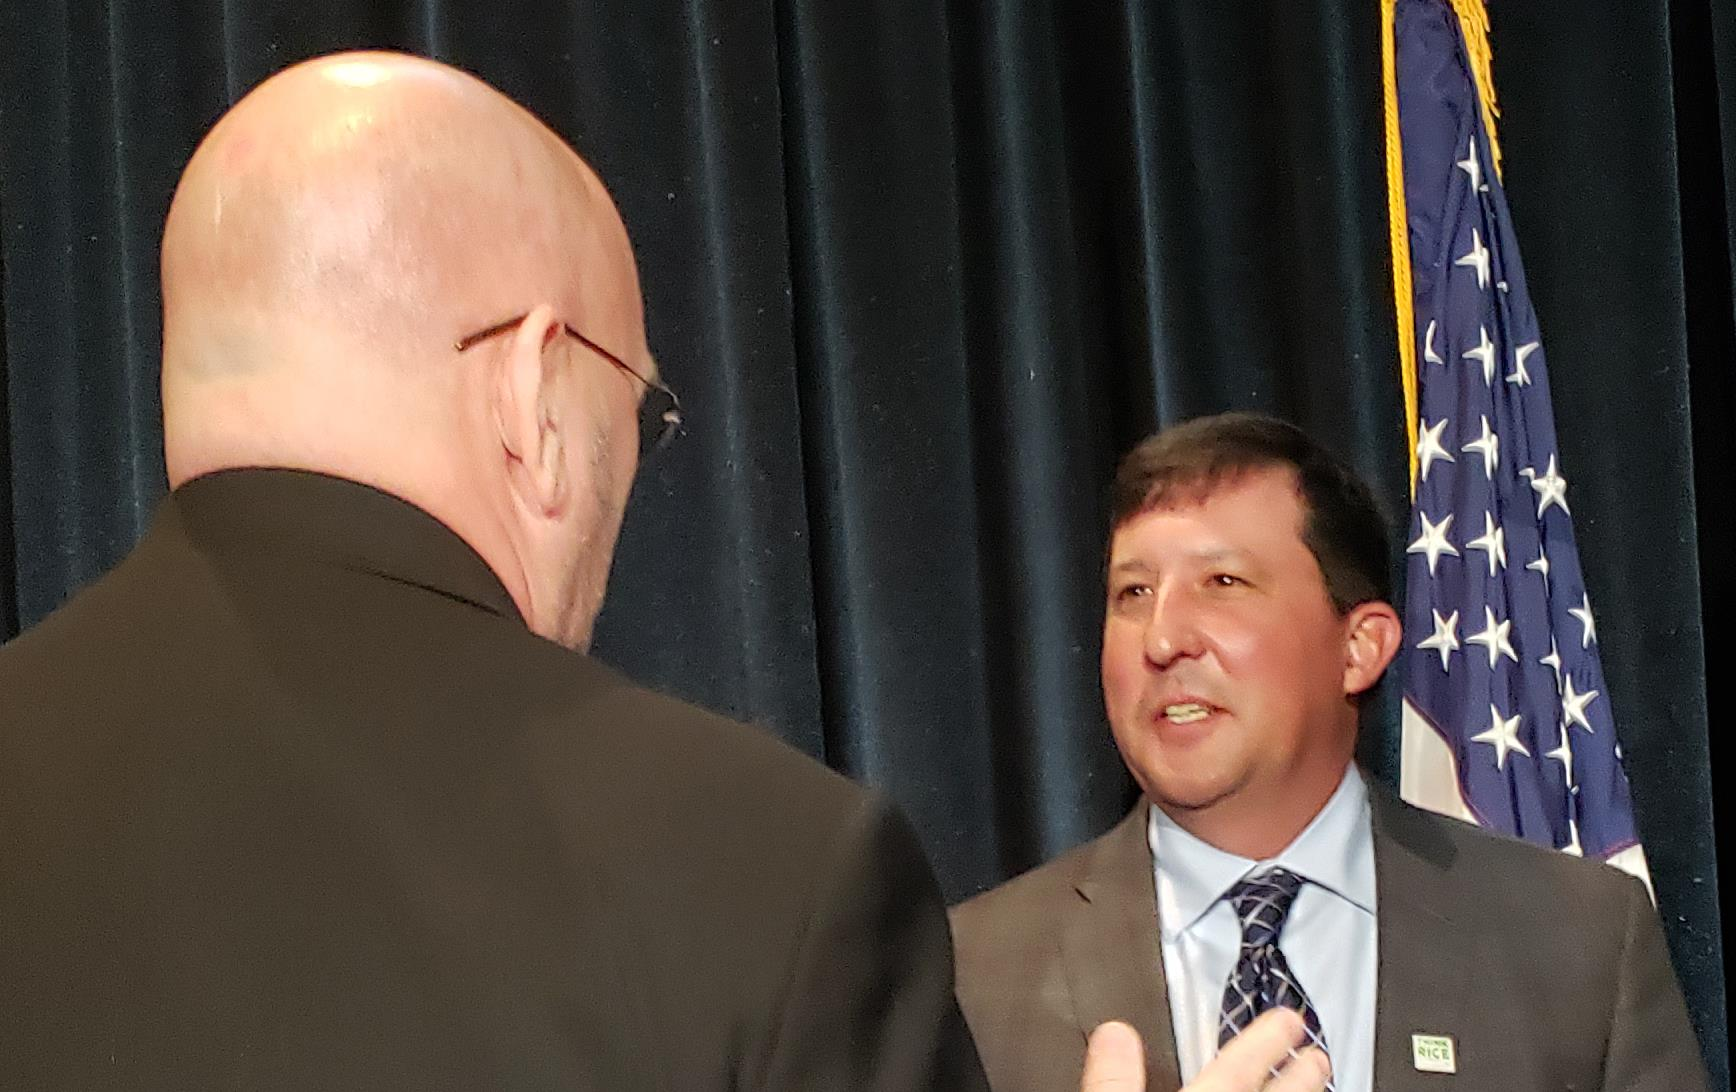 Two white men wearing business suits engaged in animated conversation, American flag in background